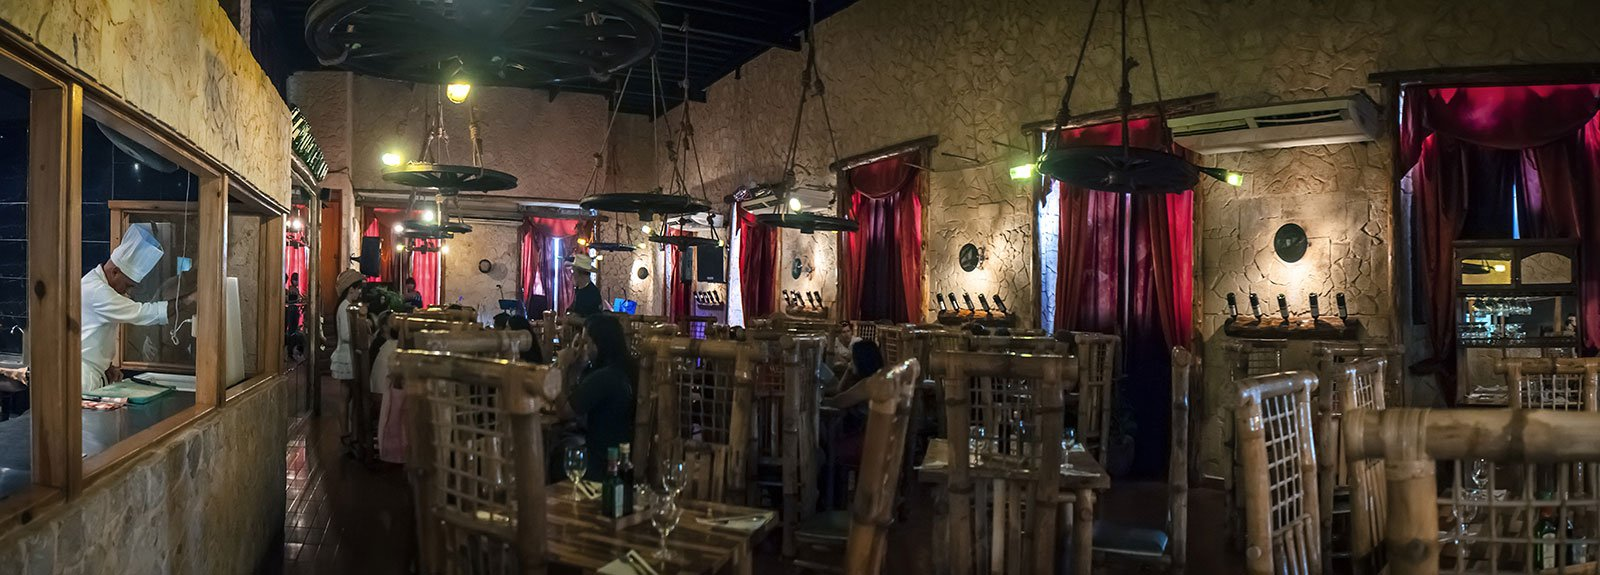 Tablao de Pancho restaurant in Old Havana, wood decoration like a rustic countryside place, band playing and people eating , waiter wearing hats